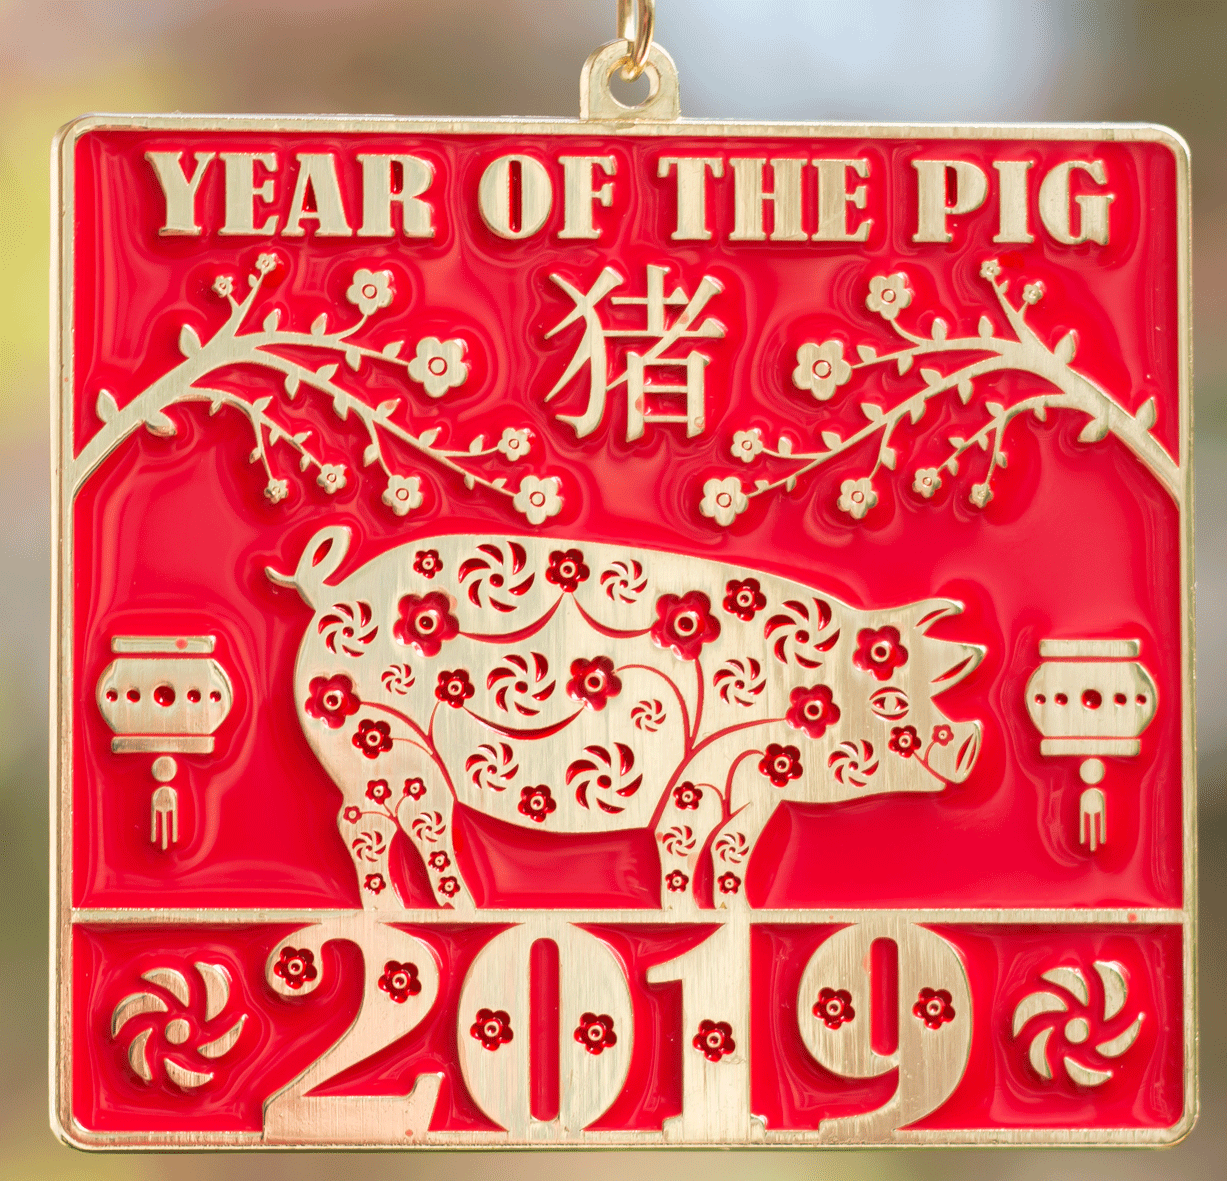 New Year Running and Walking Challenge-Year of the Pig ...